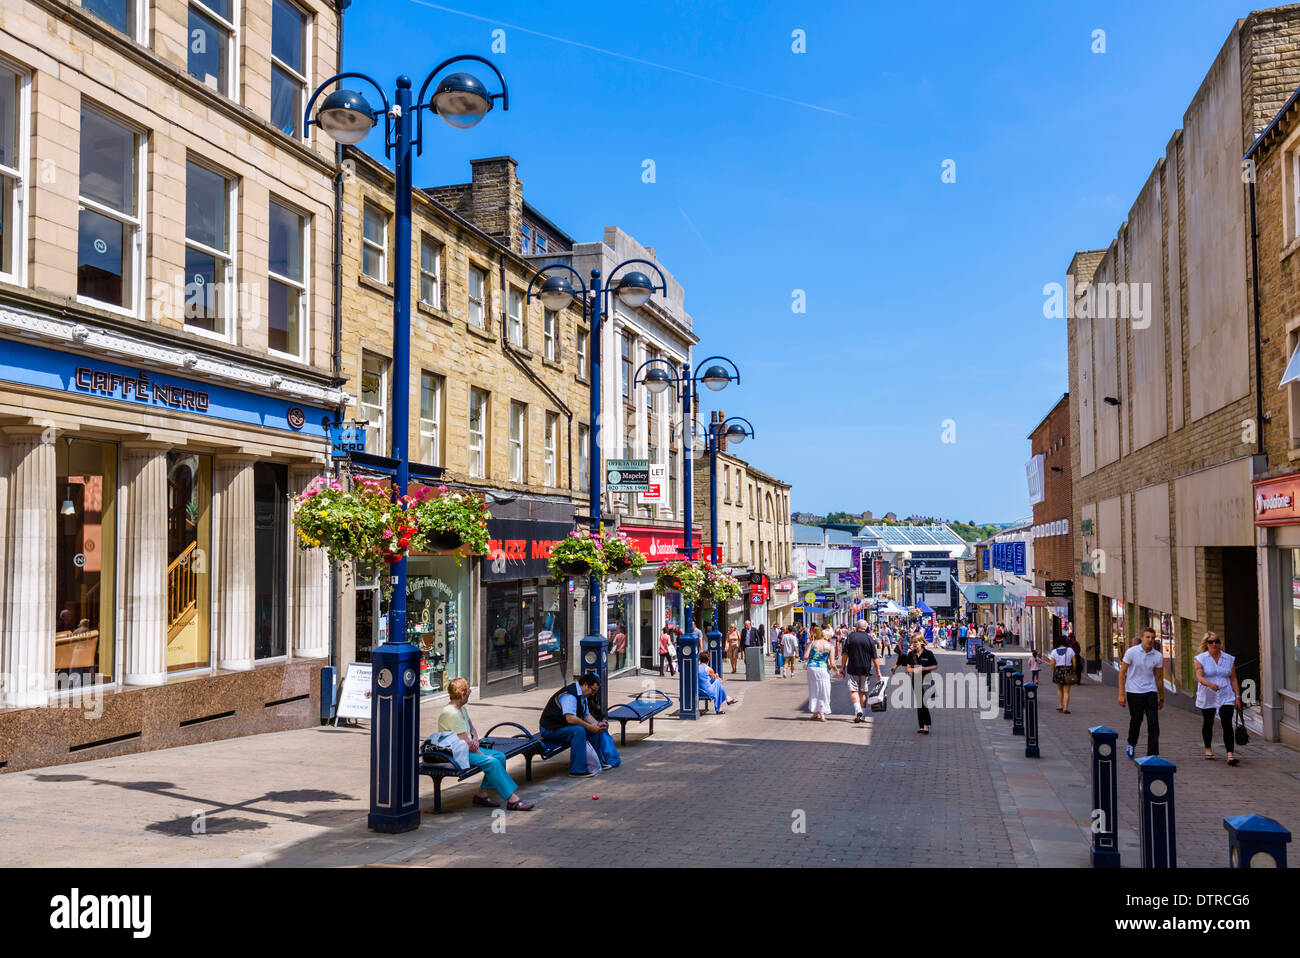 Shops on King Street in the town centre, Huddersfield, West Yorkshire, England, UK - Stock Image